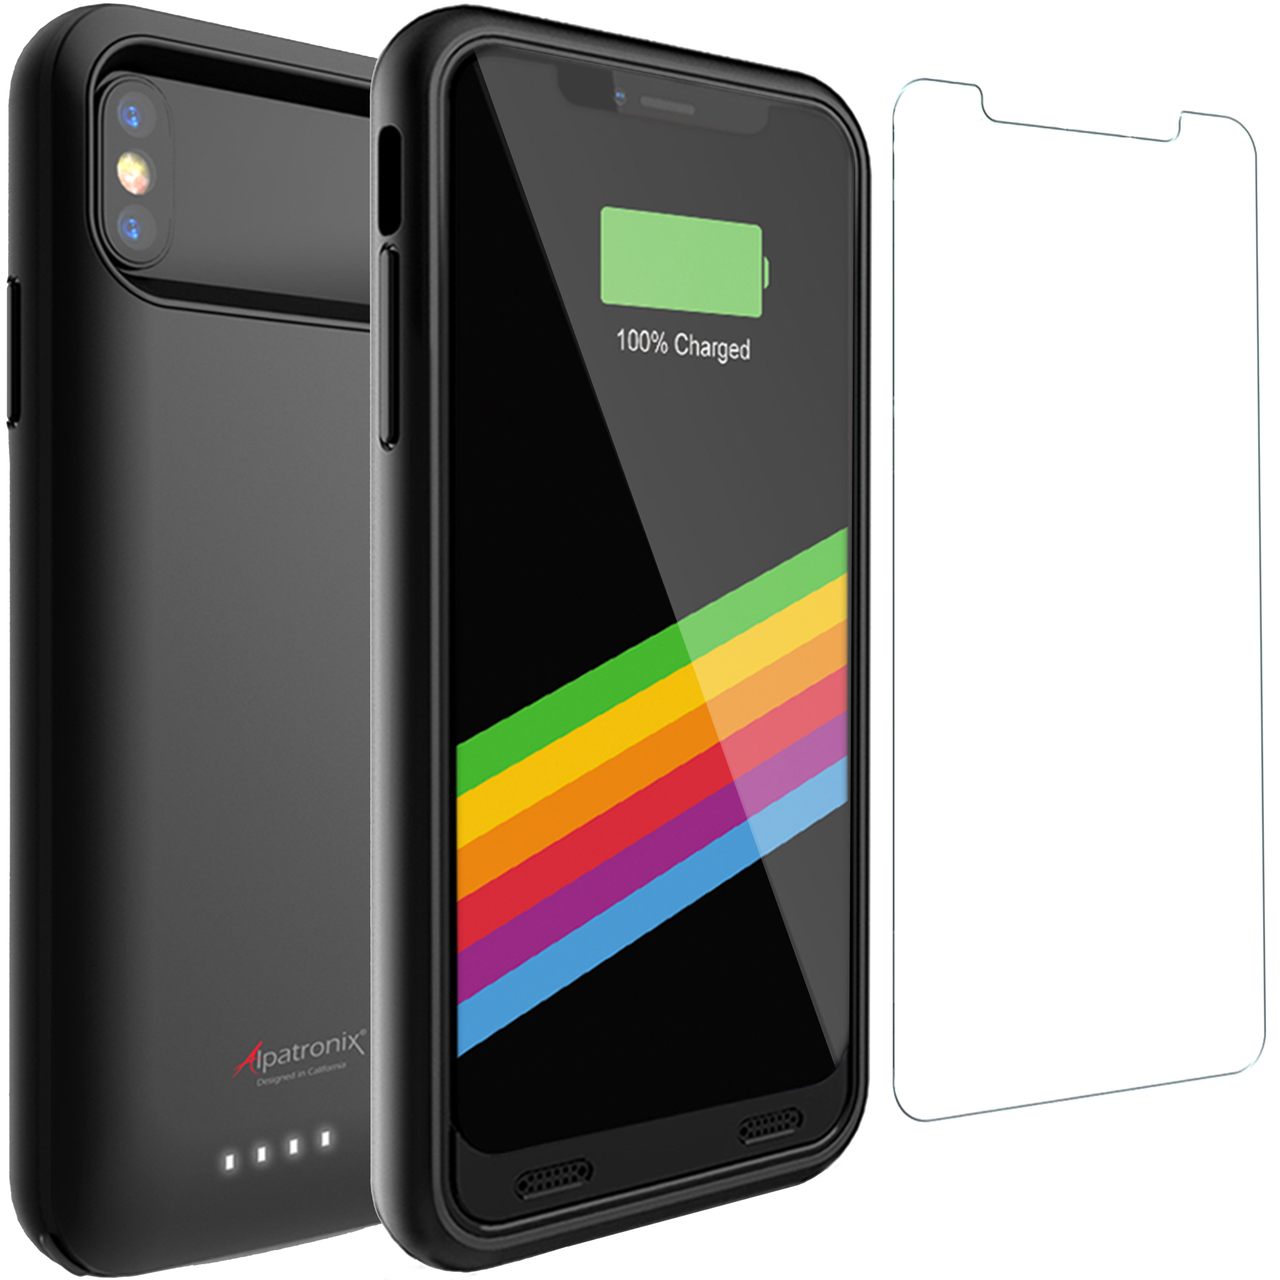 reputable site 11a5d c7c61 4000mAh Battery Case for iPhone X & XS (BX10)